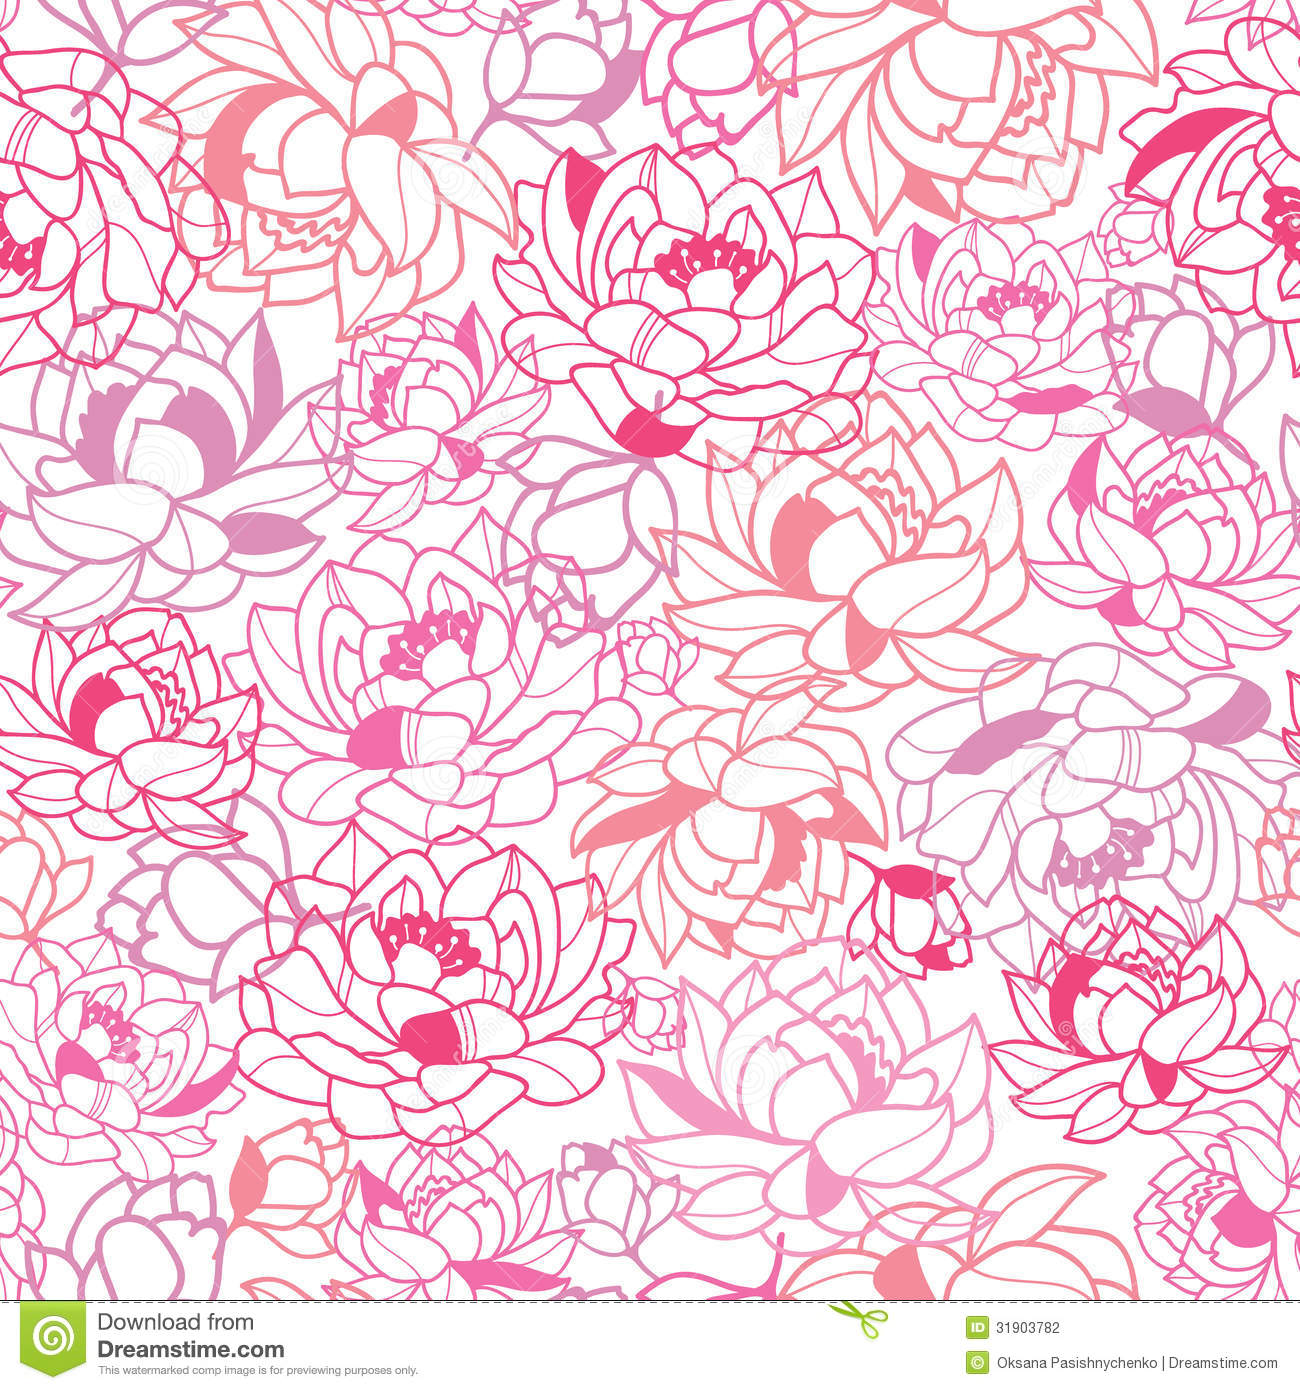 Vector Abstract Pink Flowers Seamless Pattern Background With Modern Floral  Texture.